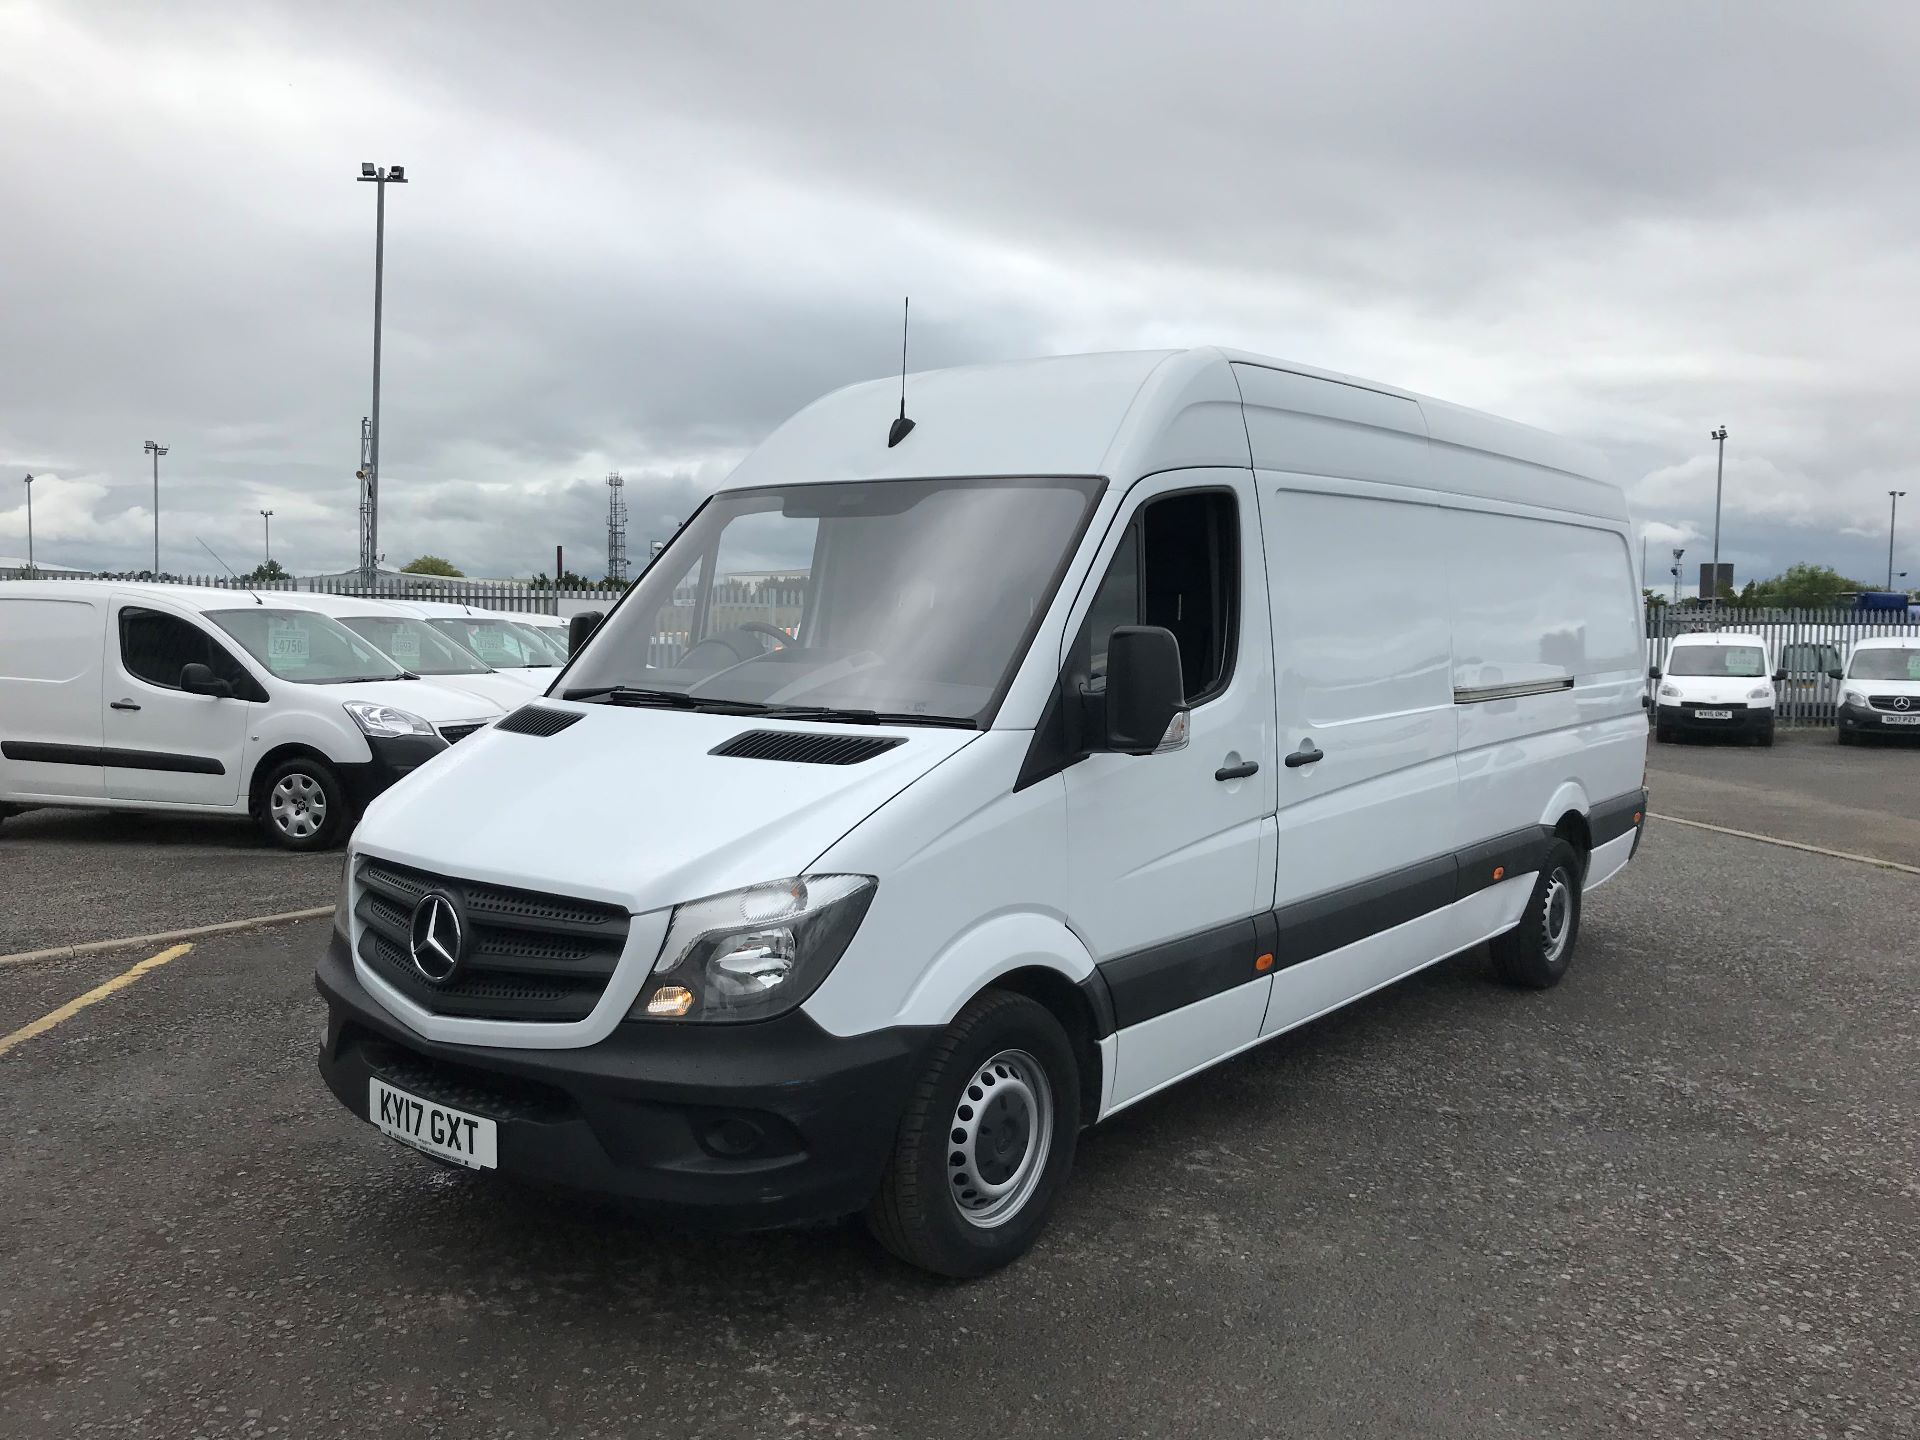 2017 Mercedes-Benz Sprinter 3.5T High Roof Van *VALUE RANGE VEHICLE CONDITION REFLECTED IN PRICE* (KY17GXT) Image 8